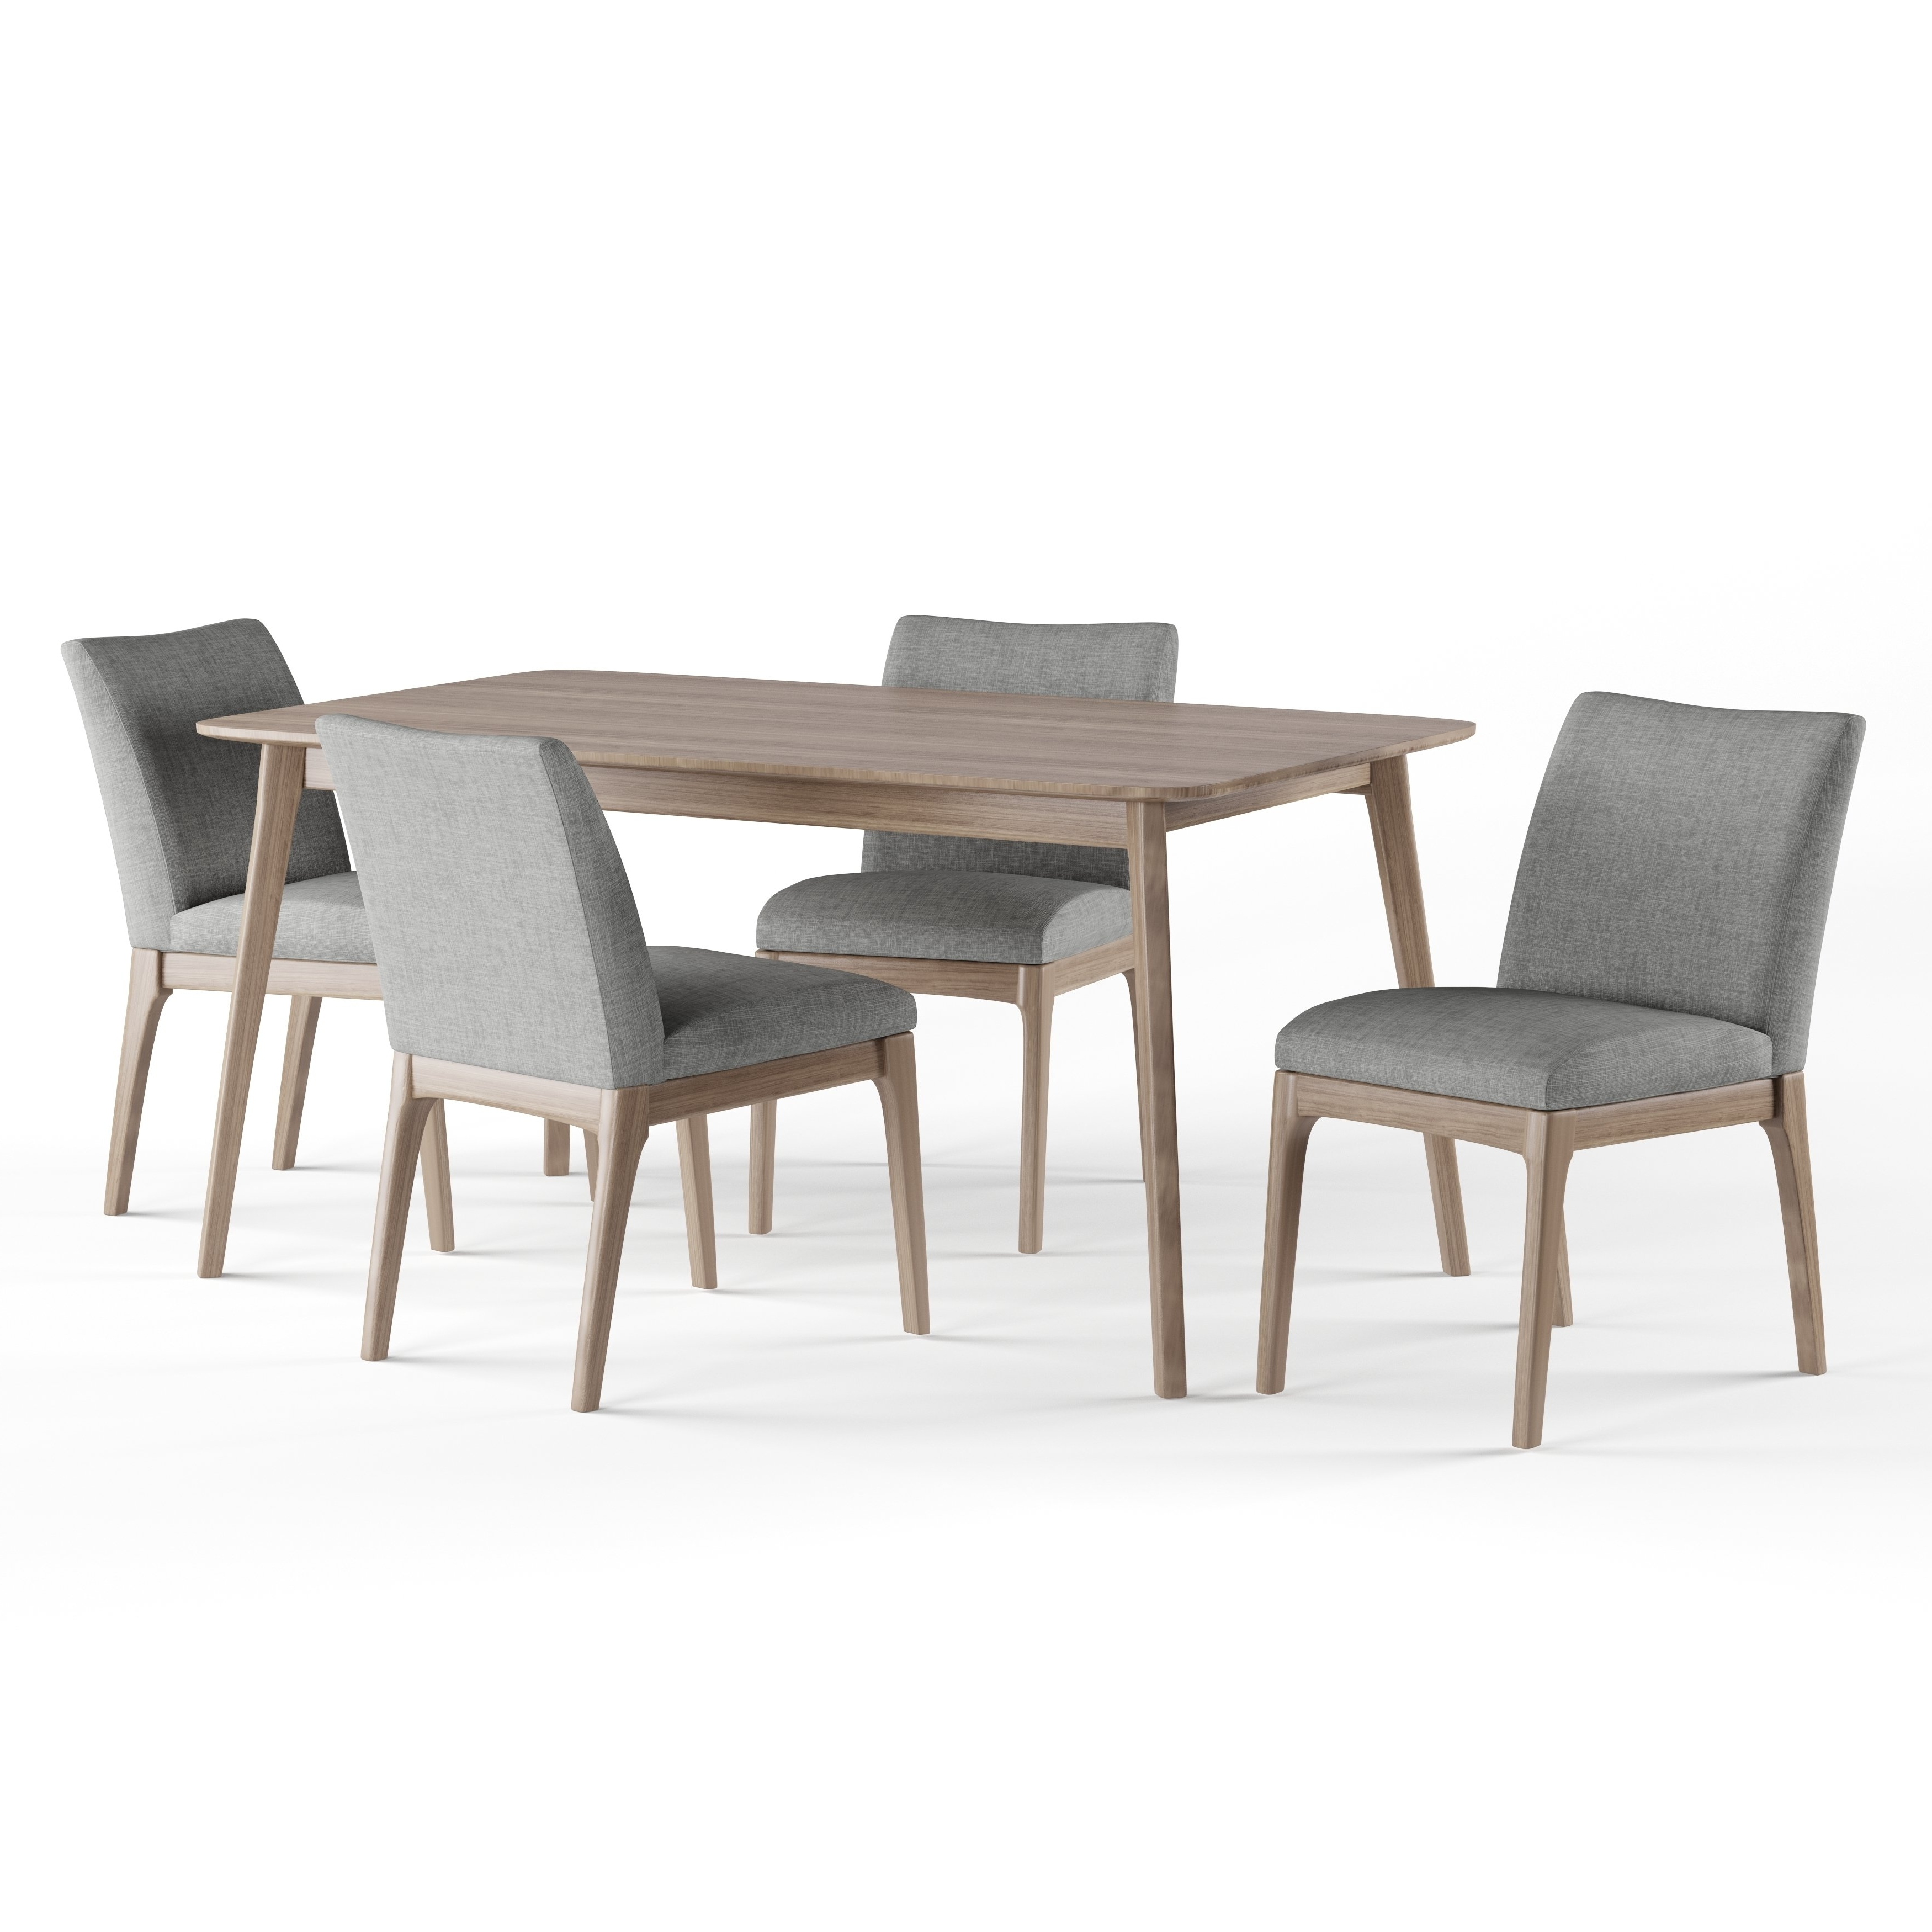 Buy Kitchen & Dining Room Sets Online At Overstock (View 10 of 25)